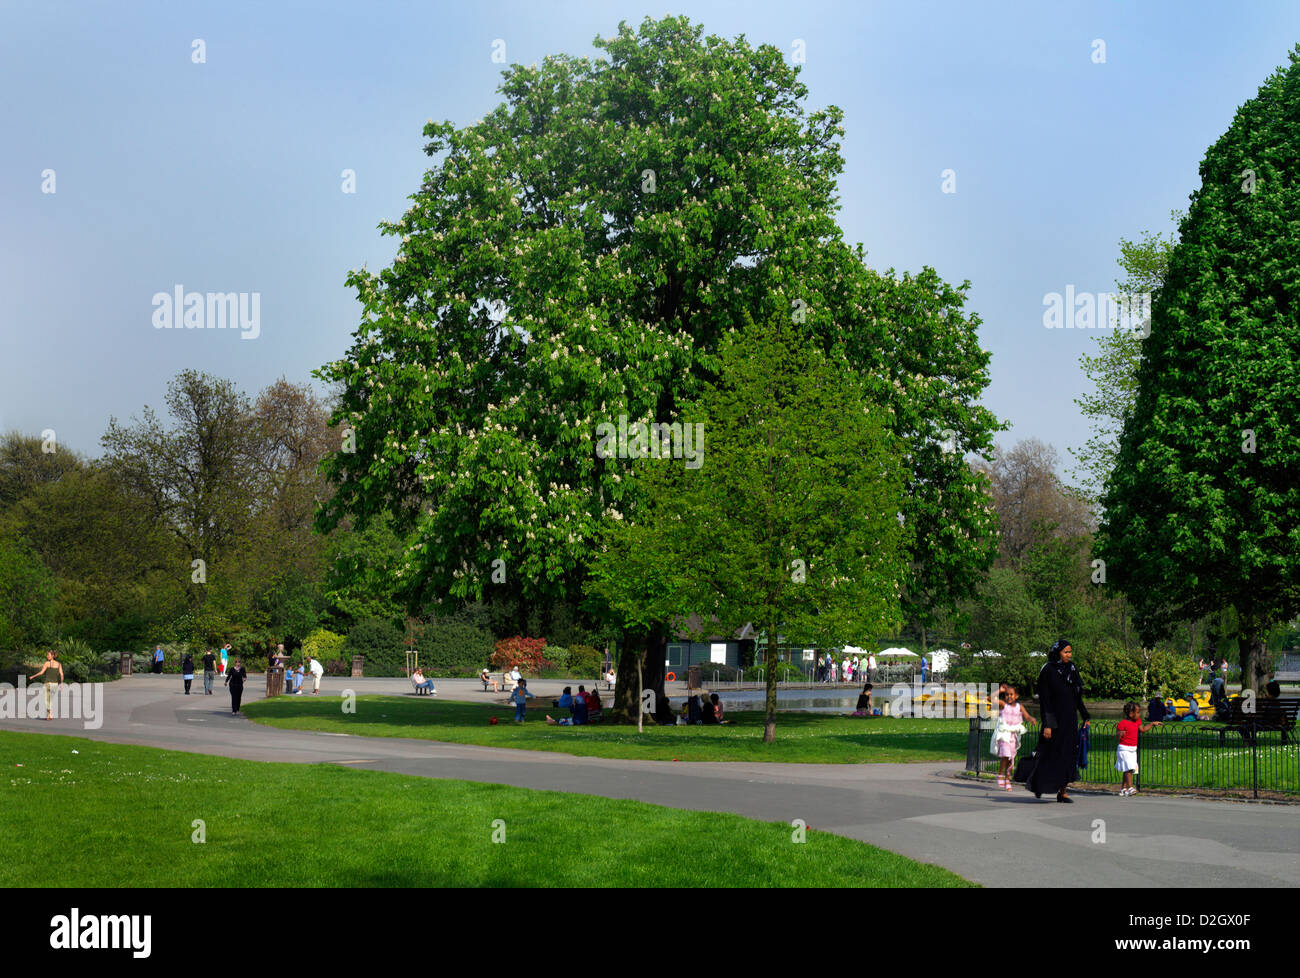 Regents Park London England Chestnut Tree in Bloom and Muslim Family - Stock Image